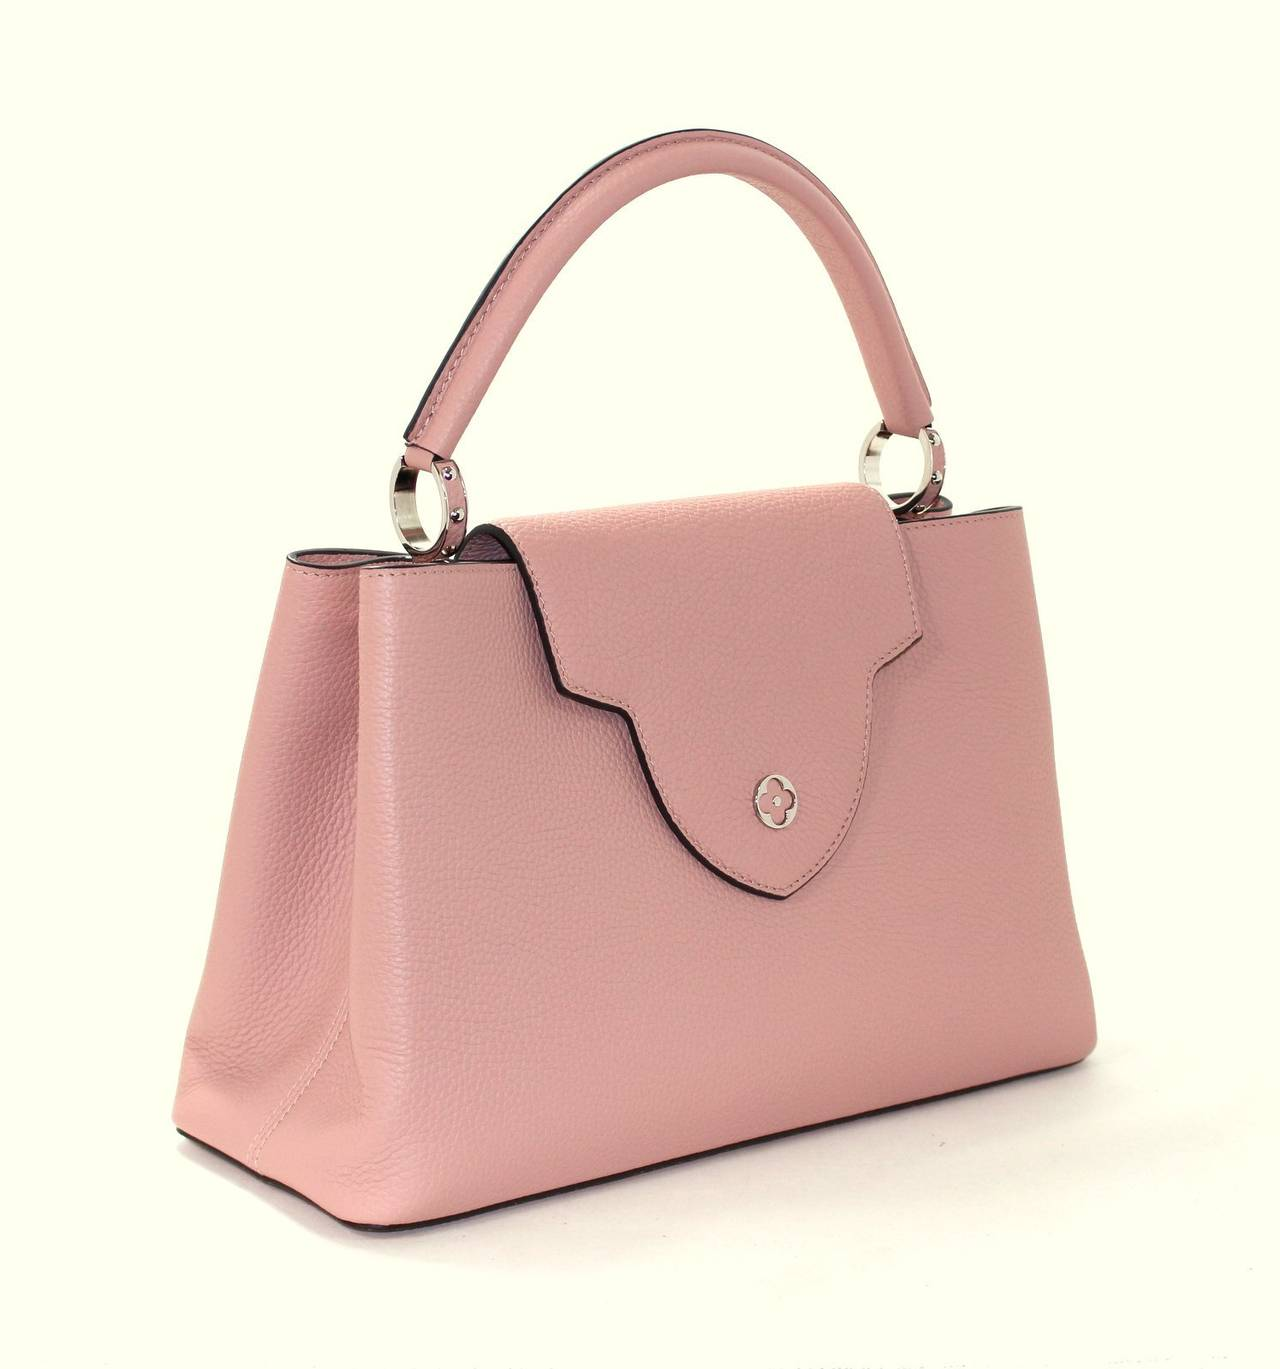 Louis Vuitton  Magnolia Leather Capucines MM Bag- PINK color 2